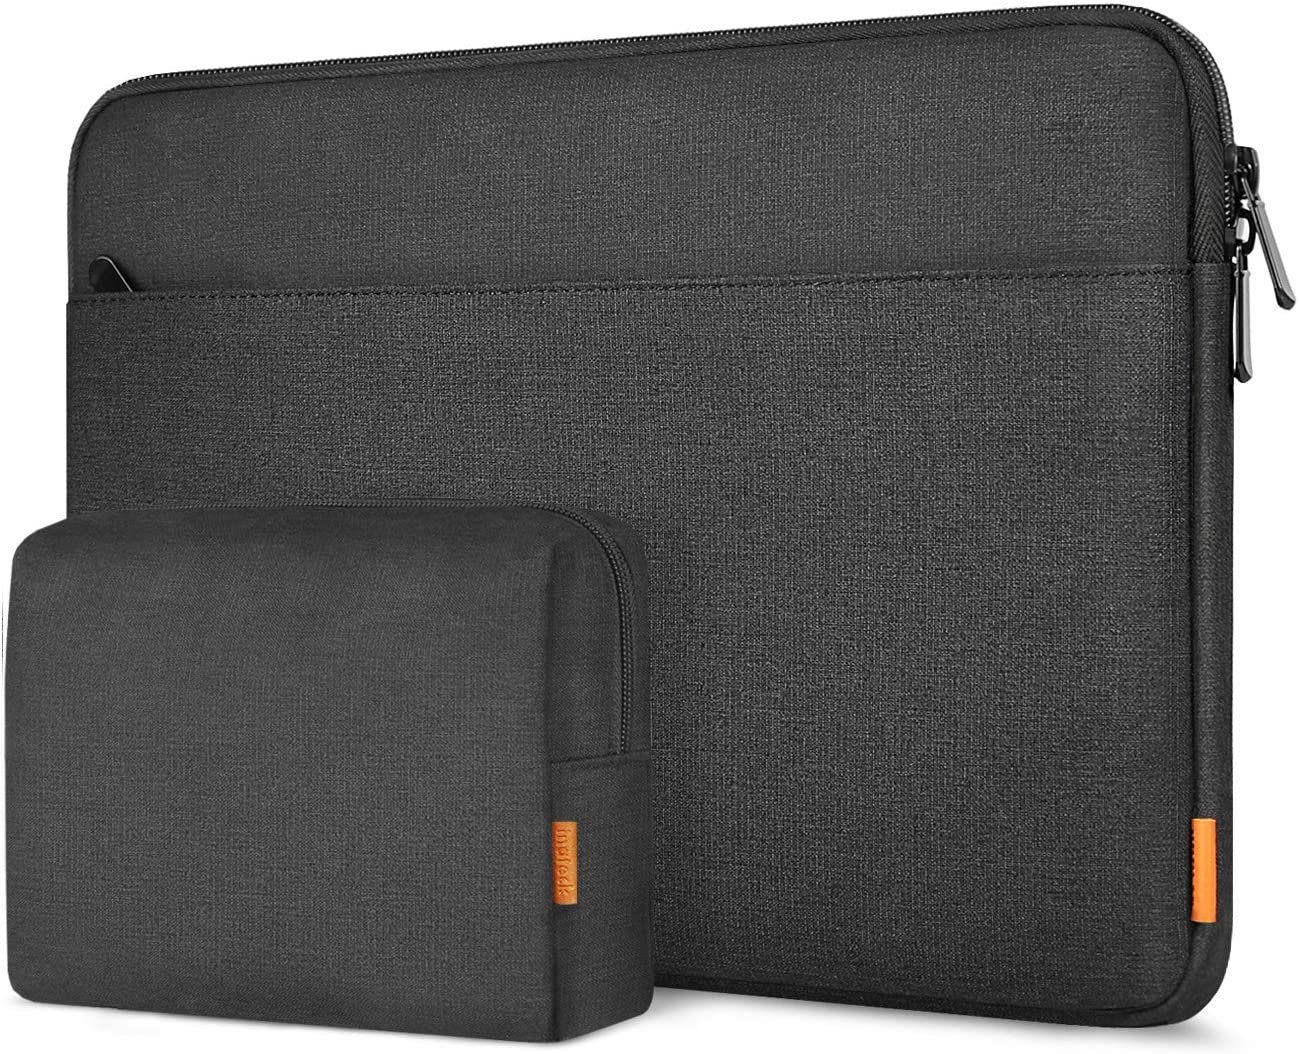 Inateck 15-15.6 Inch Laptop Sleeve Case Bag with Accessory Pouch Compatible with Laptops/Chromebooks/Notebooks - Black